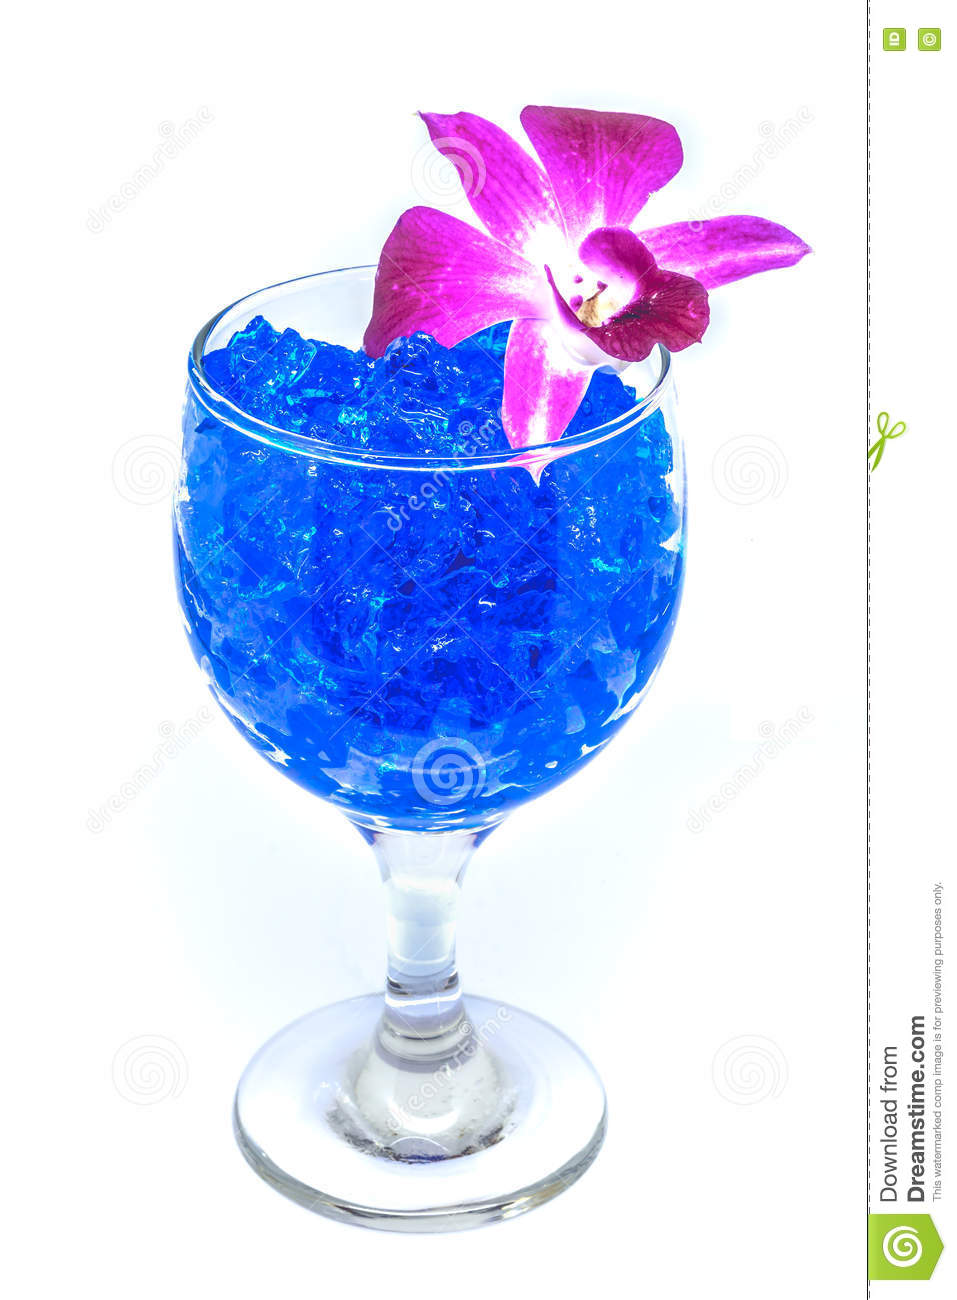 Beautiful Flowers In Wine Glass With Hydrogel Isolated On White.